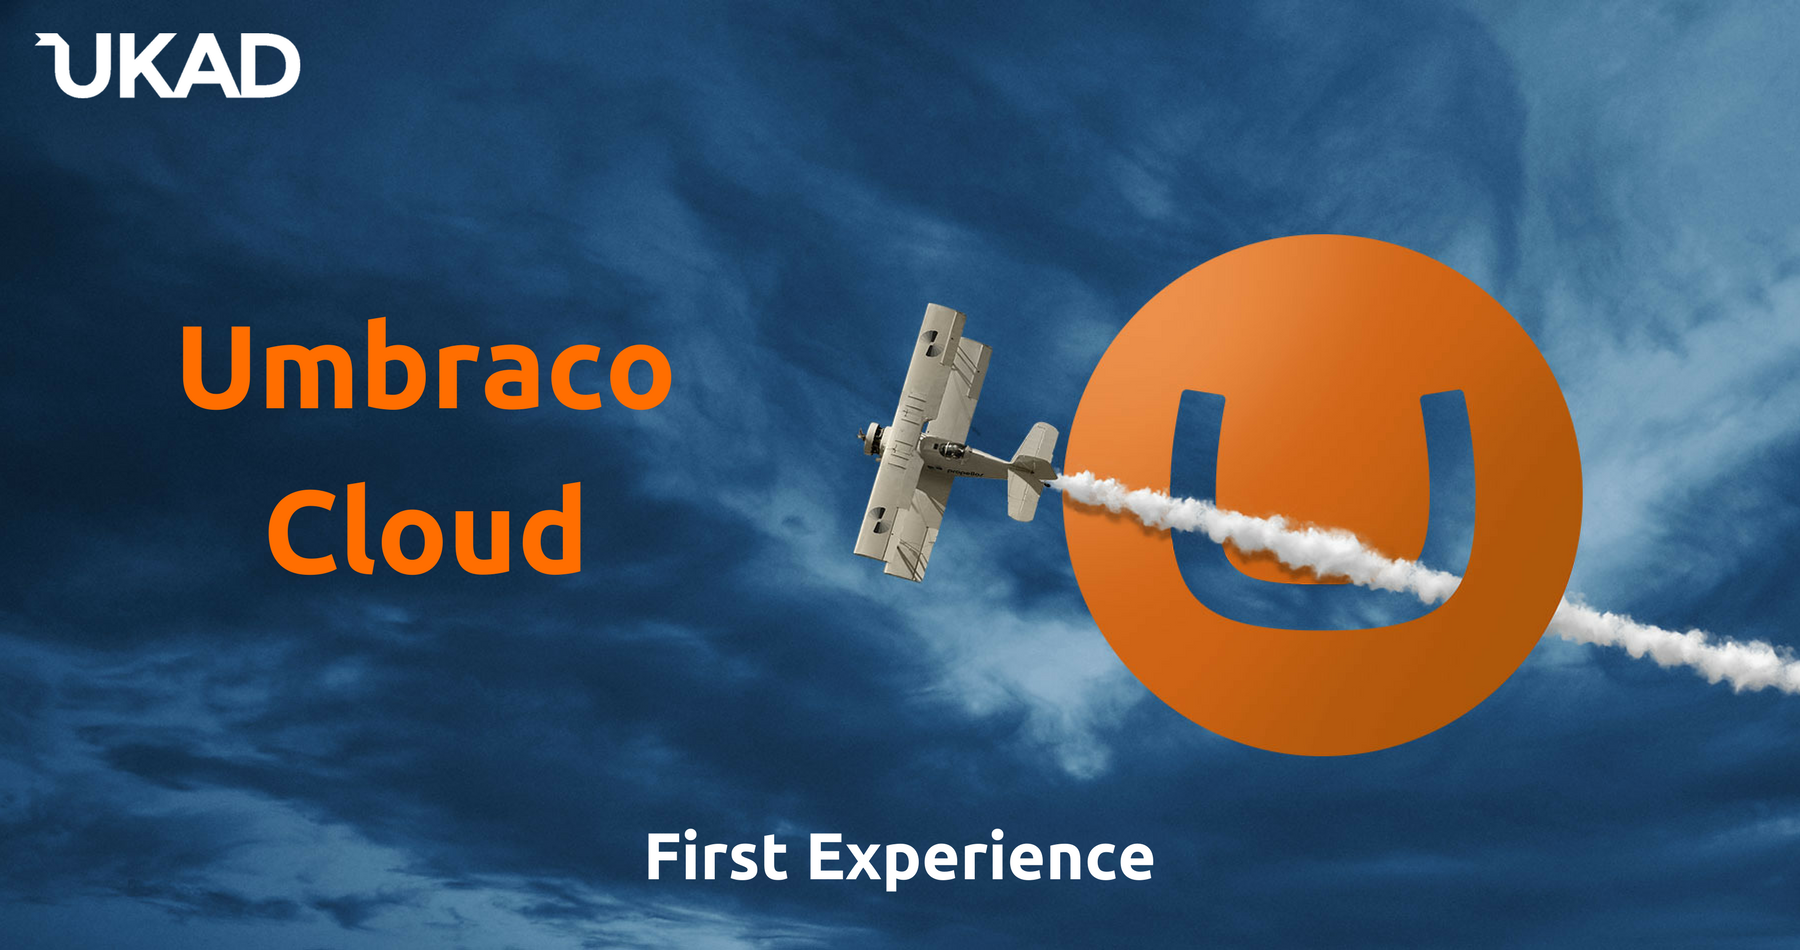 Umbraco Cloud or UaaS - Our first experience